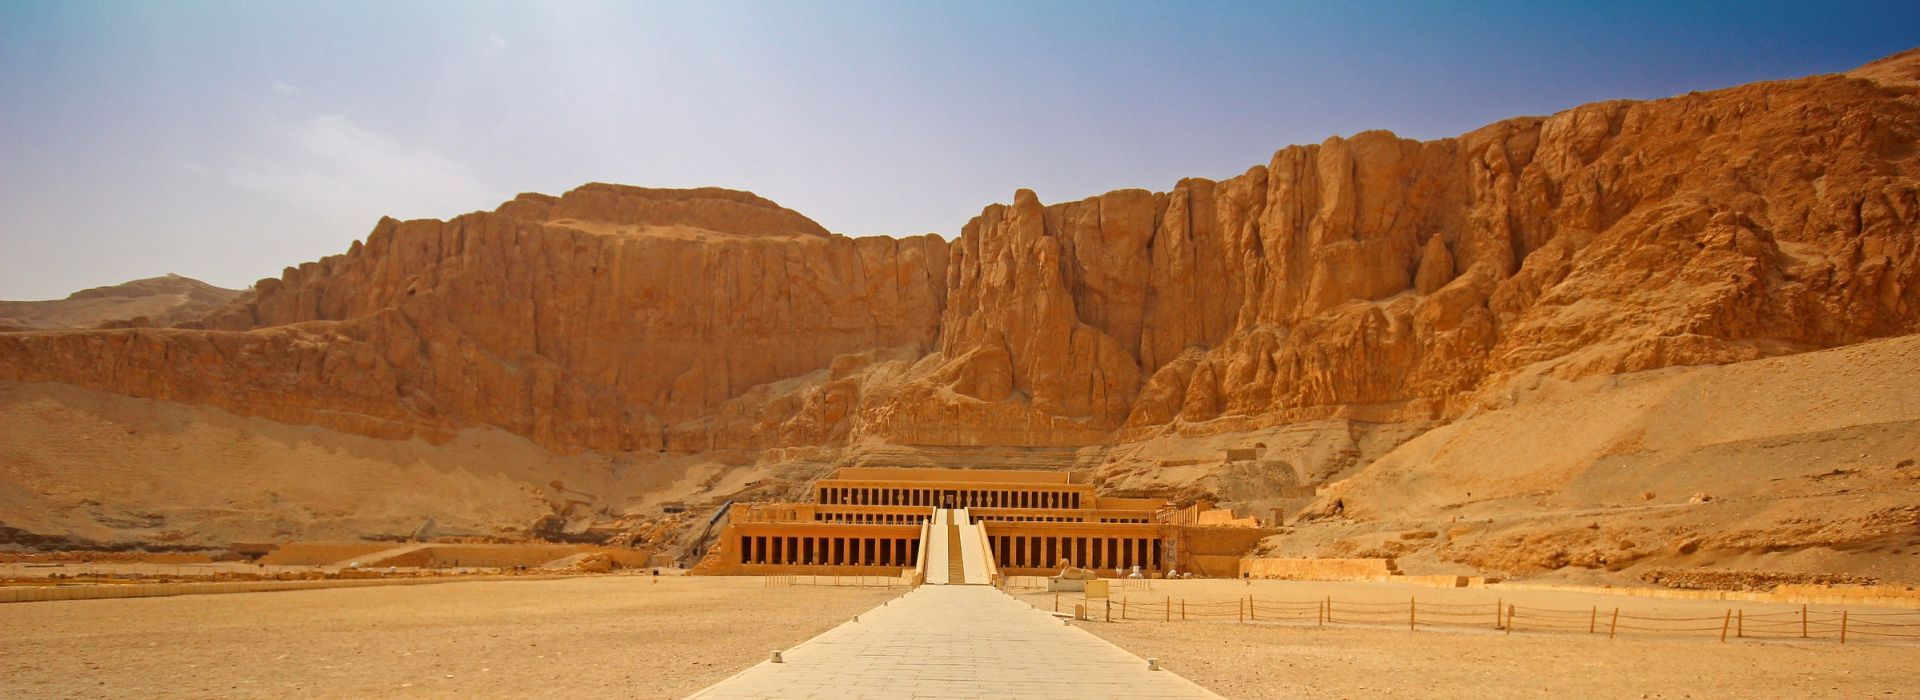 Cultural, religious and historic sites Tours in Luxor